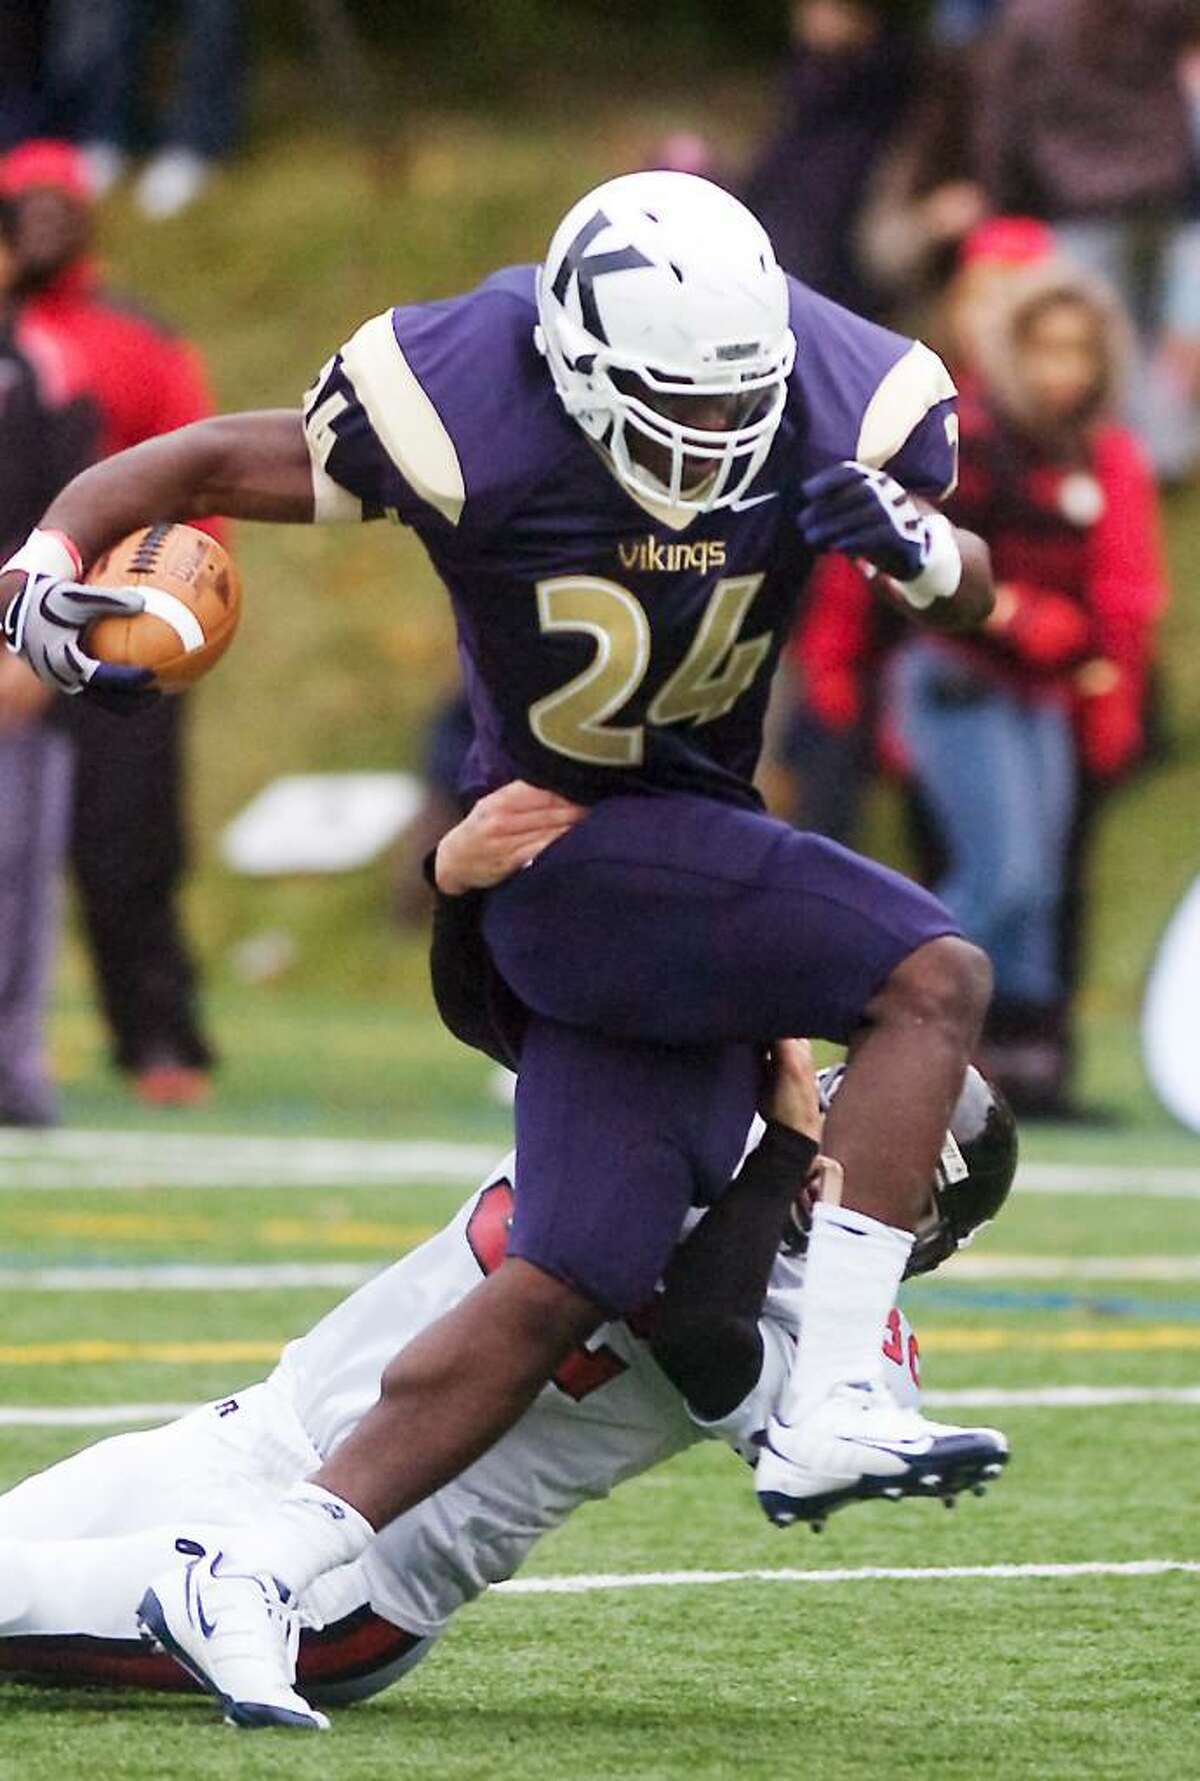 King's Kevin Pierre_Louis slips through the grip of Kingswood-Oxford's Mike Humphreys in football action Saturday, October 17, 2009 in Stamford, Conn.